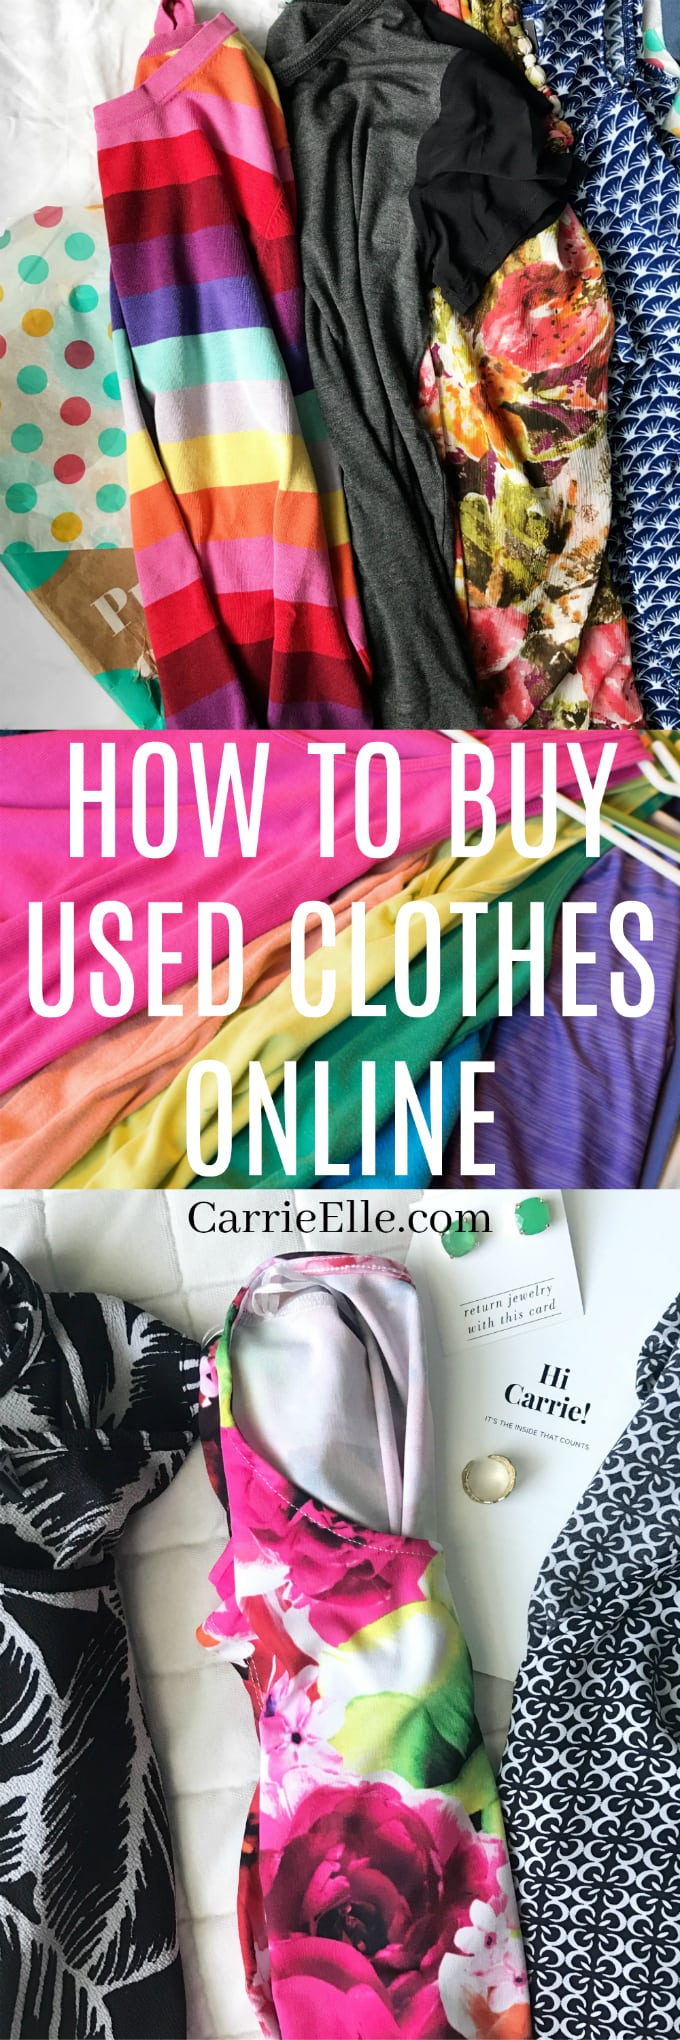 How to Buy Used Clothes Online